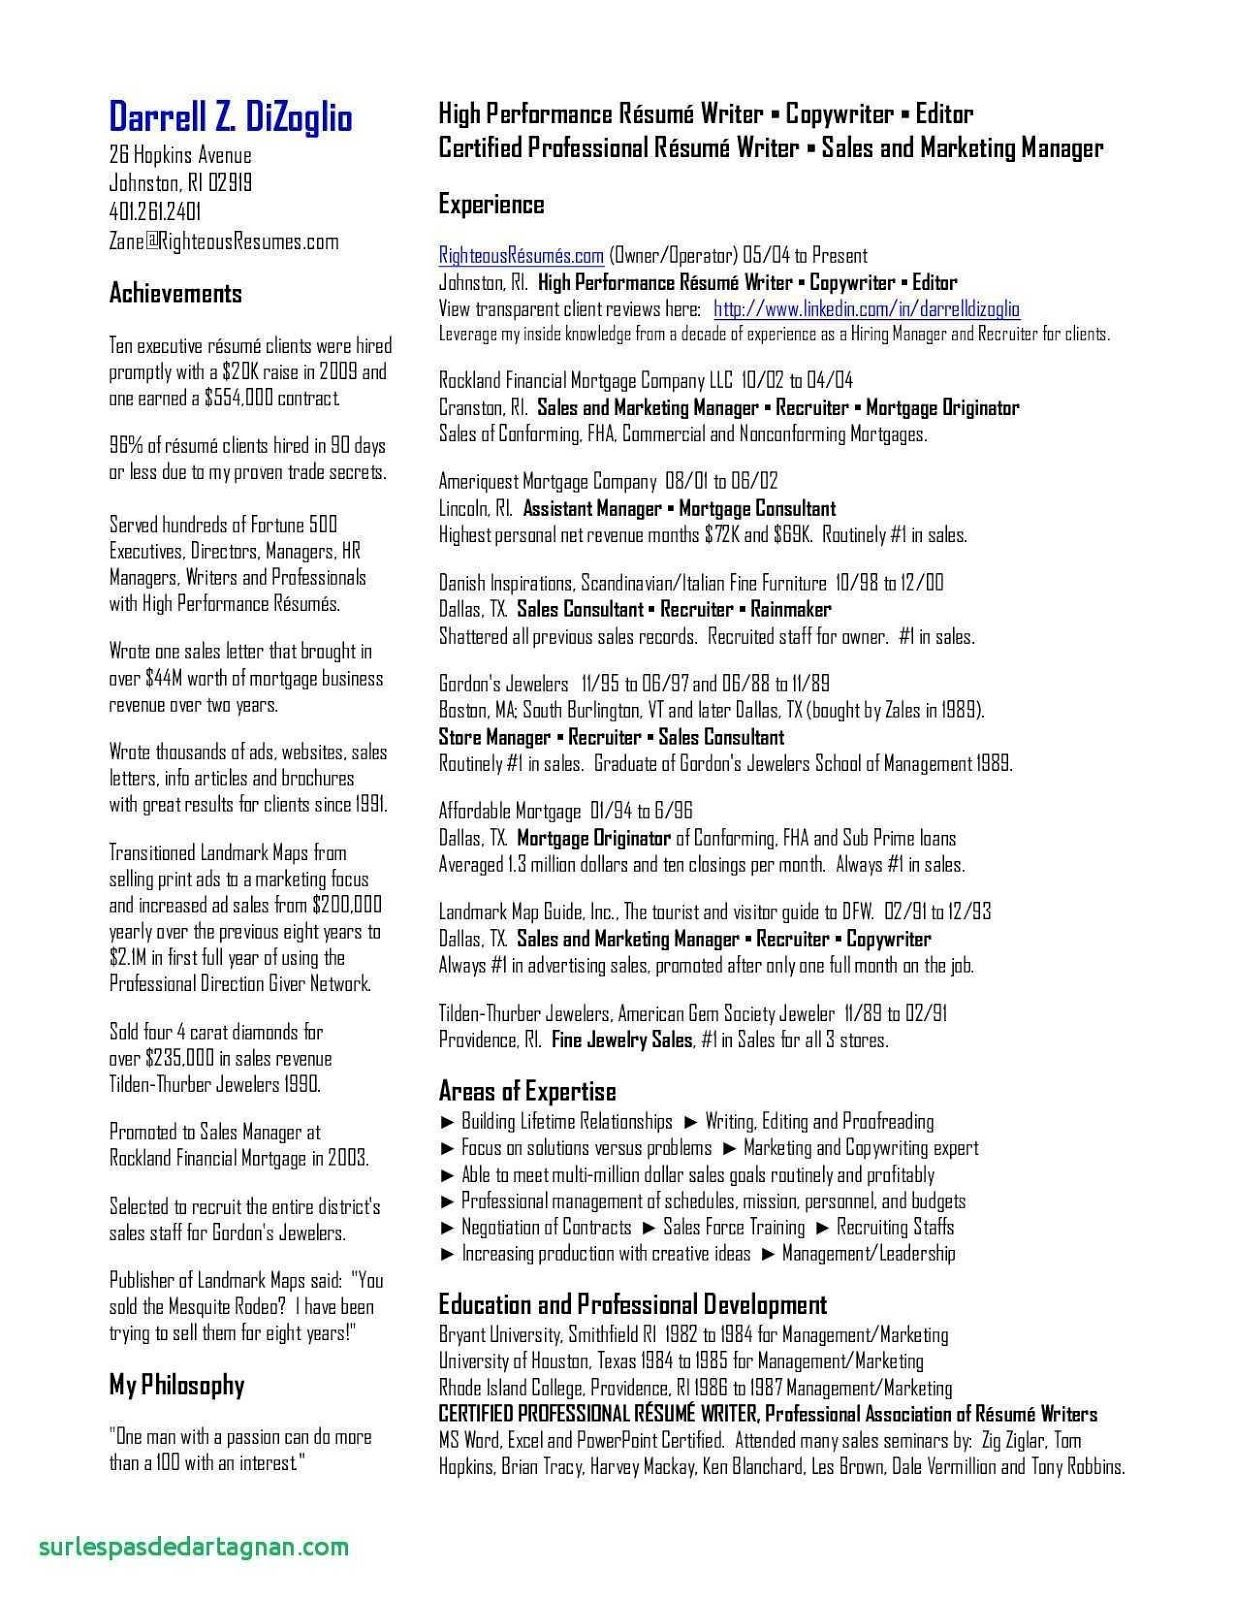 Personal Assistant Resume Samples Personal Assistant Resume Samples Personal Assistant Resume Sample Nann Best Resume Template Resume Writer Resume Examples